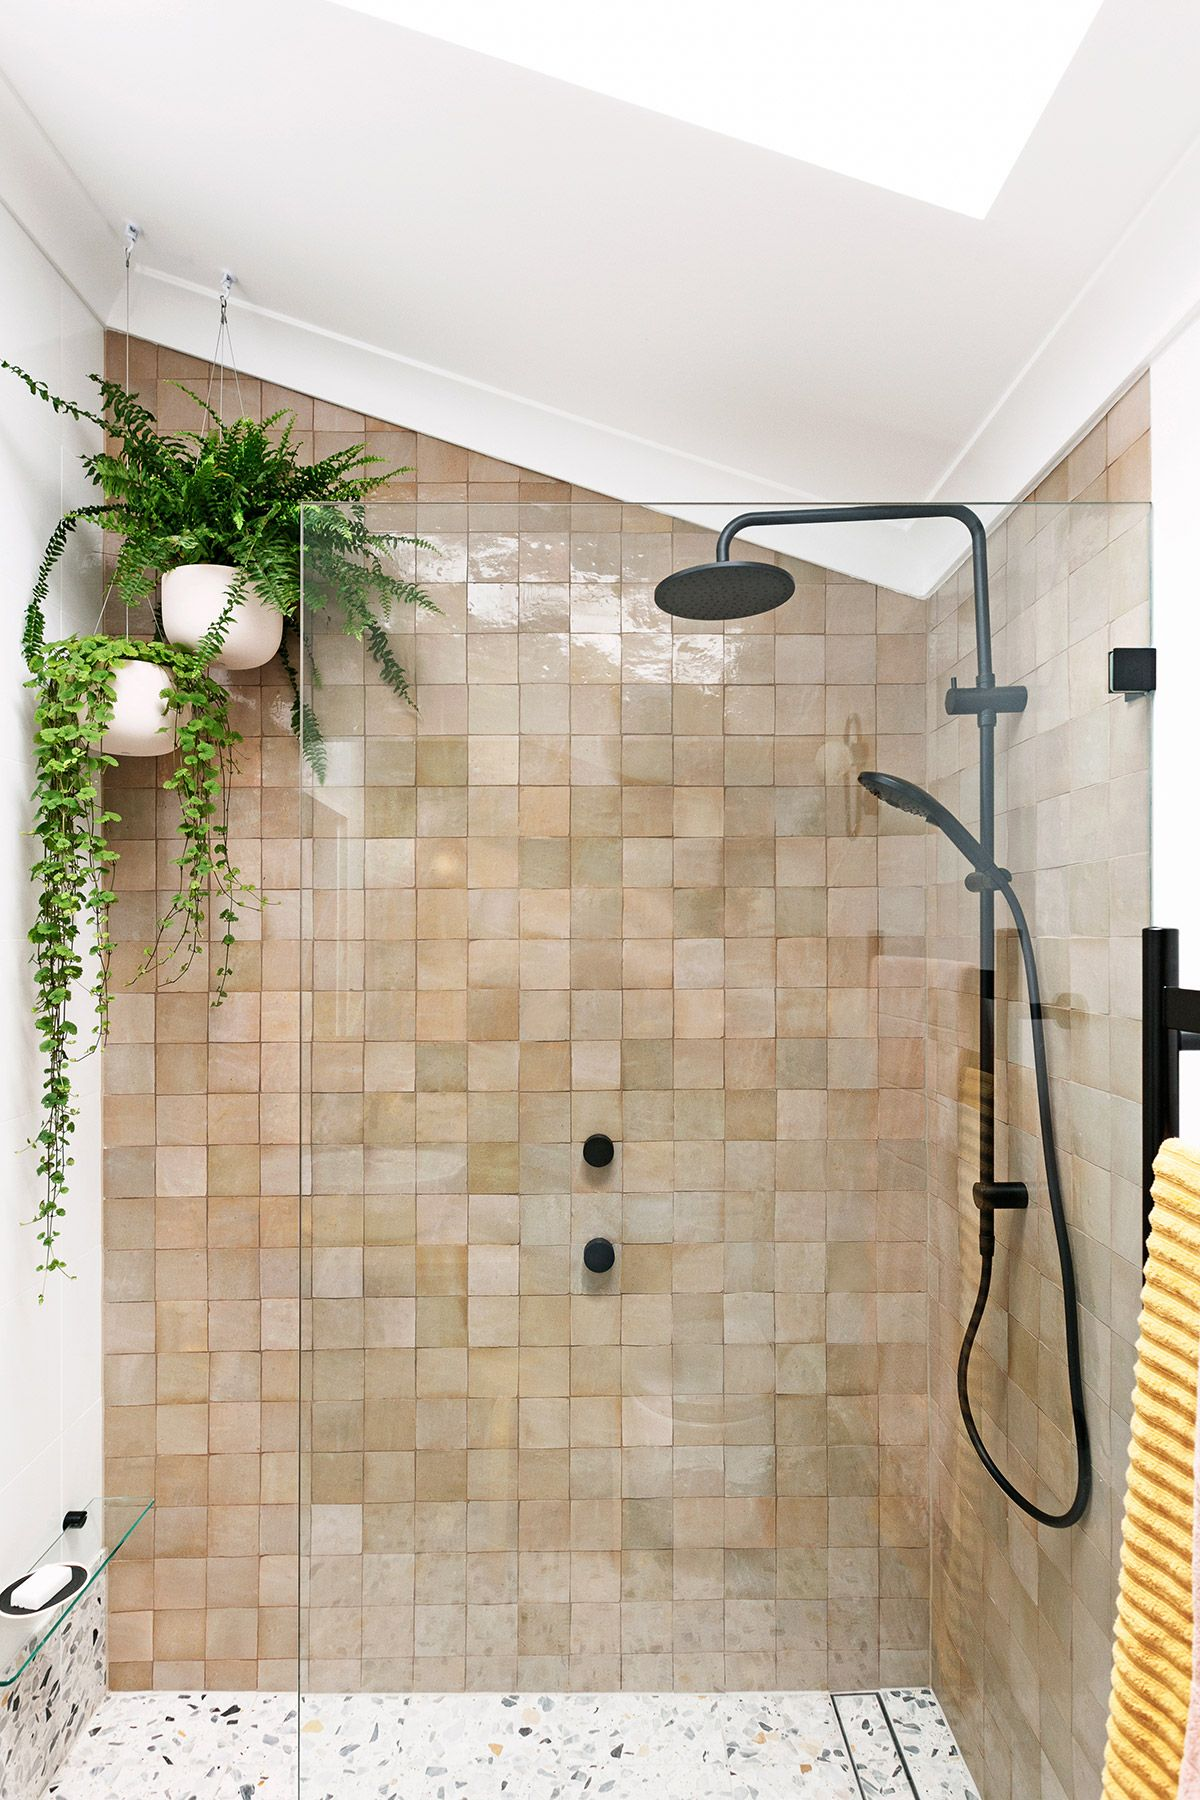 My bathroom renovation - it's all about terrazzo and Moroccan tiles